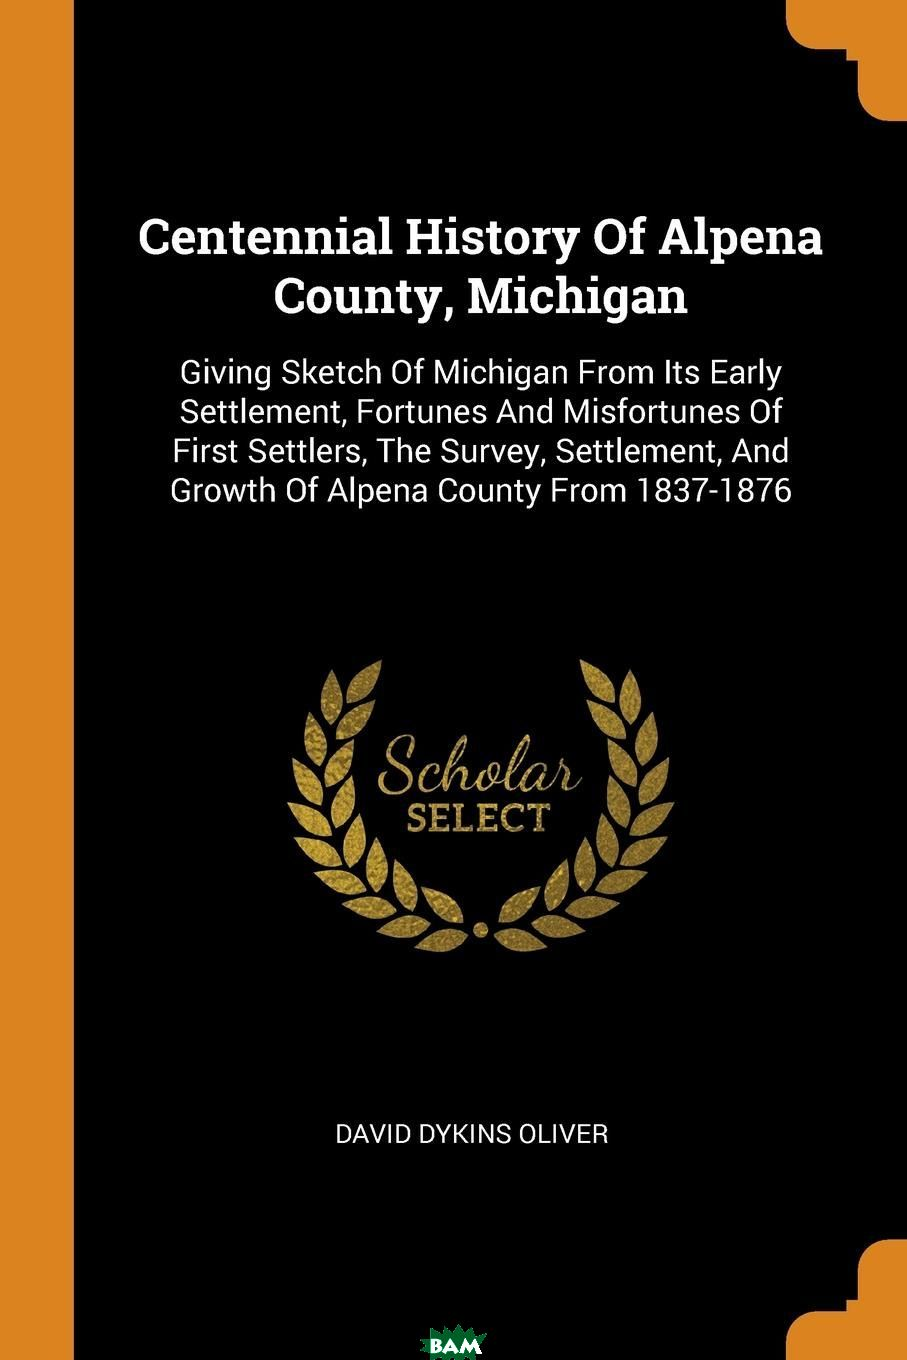 Купить Centennial History Of Alpena County, Michigan. Giving Sketch Of Michigan From Its Early Settlement, Fortunes And Misfortunes Of First Settlers, The Survey, Settlement, And Growth Of Alpena County Fro, David Dykins Oliver, 9780353449794